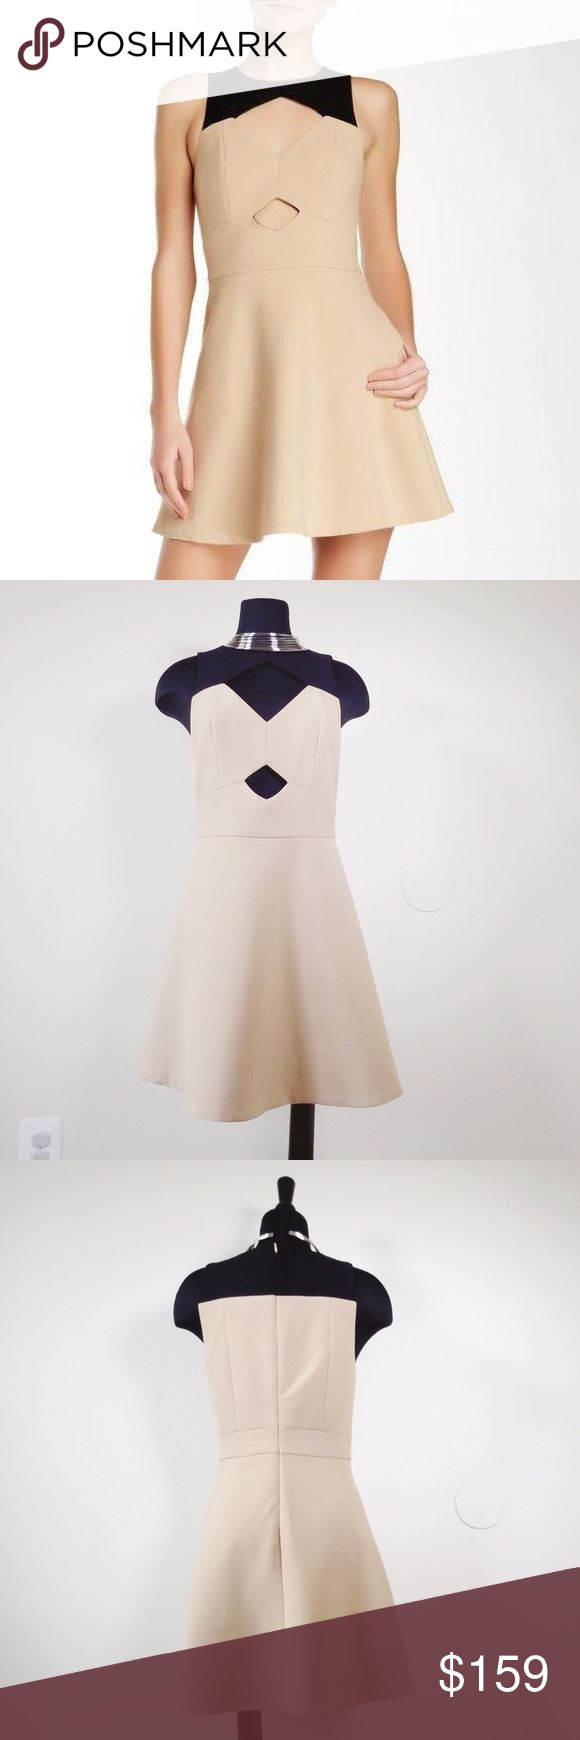 Rachel Zoe Page camel cut out fit n flare dress 6 Brand new with tags!! Excellent condition. Rachel Zoe page cutout natural fit n flare dress  Sleeveless fit and flare dress with front cutouts. Perfect dress for day to night, weddings, parties, and holiday events. Pair with simple heels and minimal jewelry. Beige option has black color block at neckline. FULLY LINED.  Fiber Content: 64% polyester, 27% viscose, 6% cotton, 3% elastane Rachel Zoe Dresses Mini